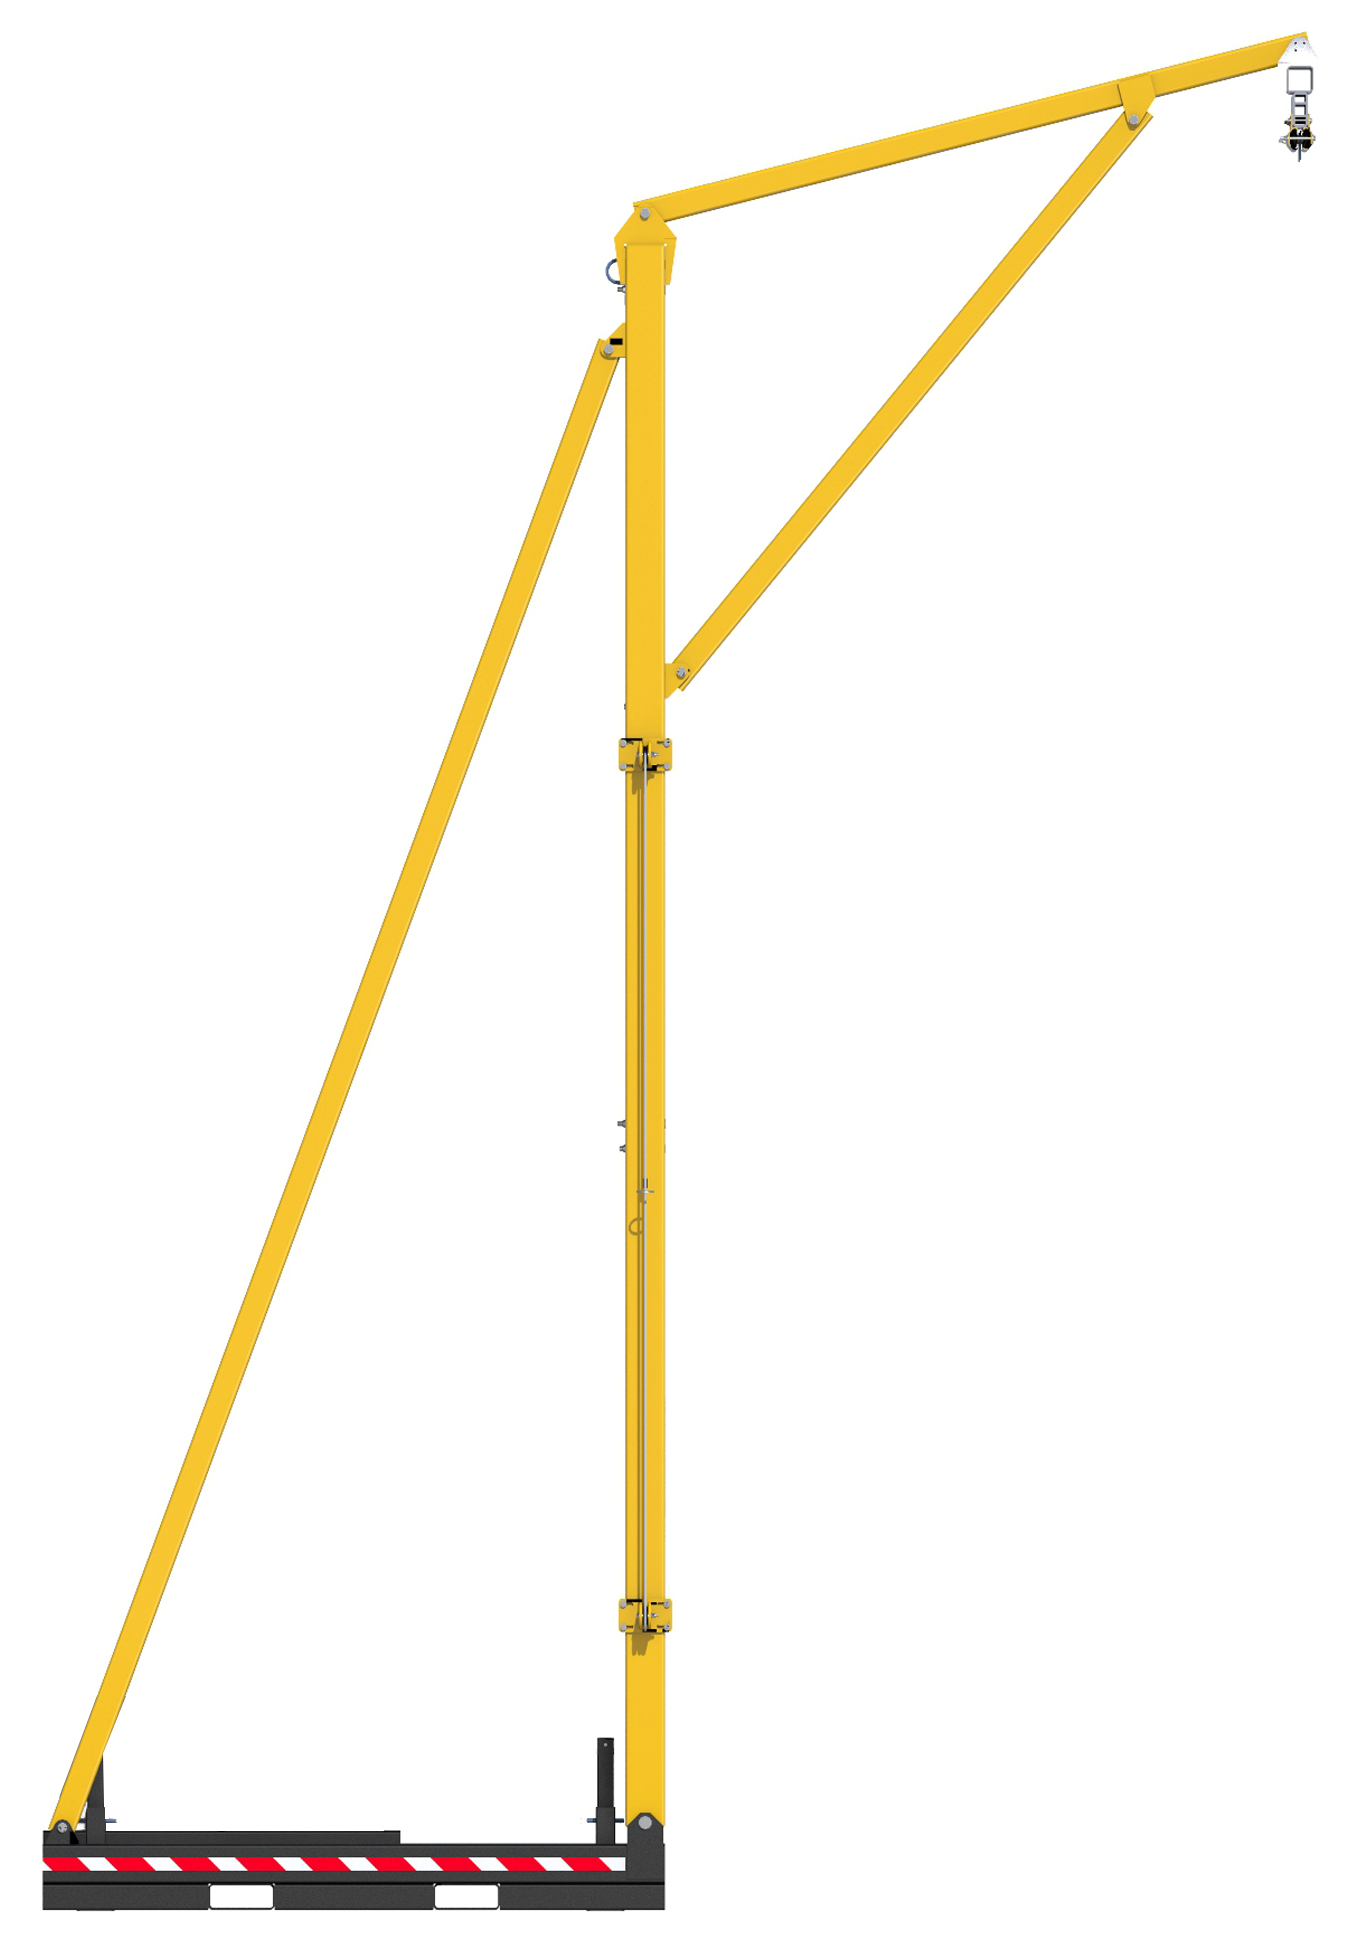 FlexiGuard Counterweighted Overhead Rail Fall Arrest System,  No Counterweights, Side View